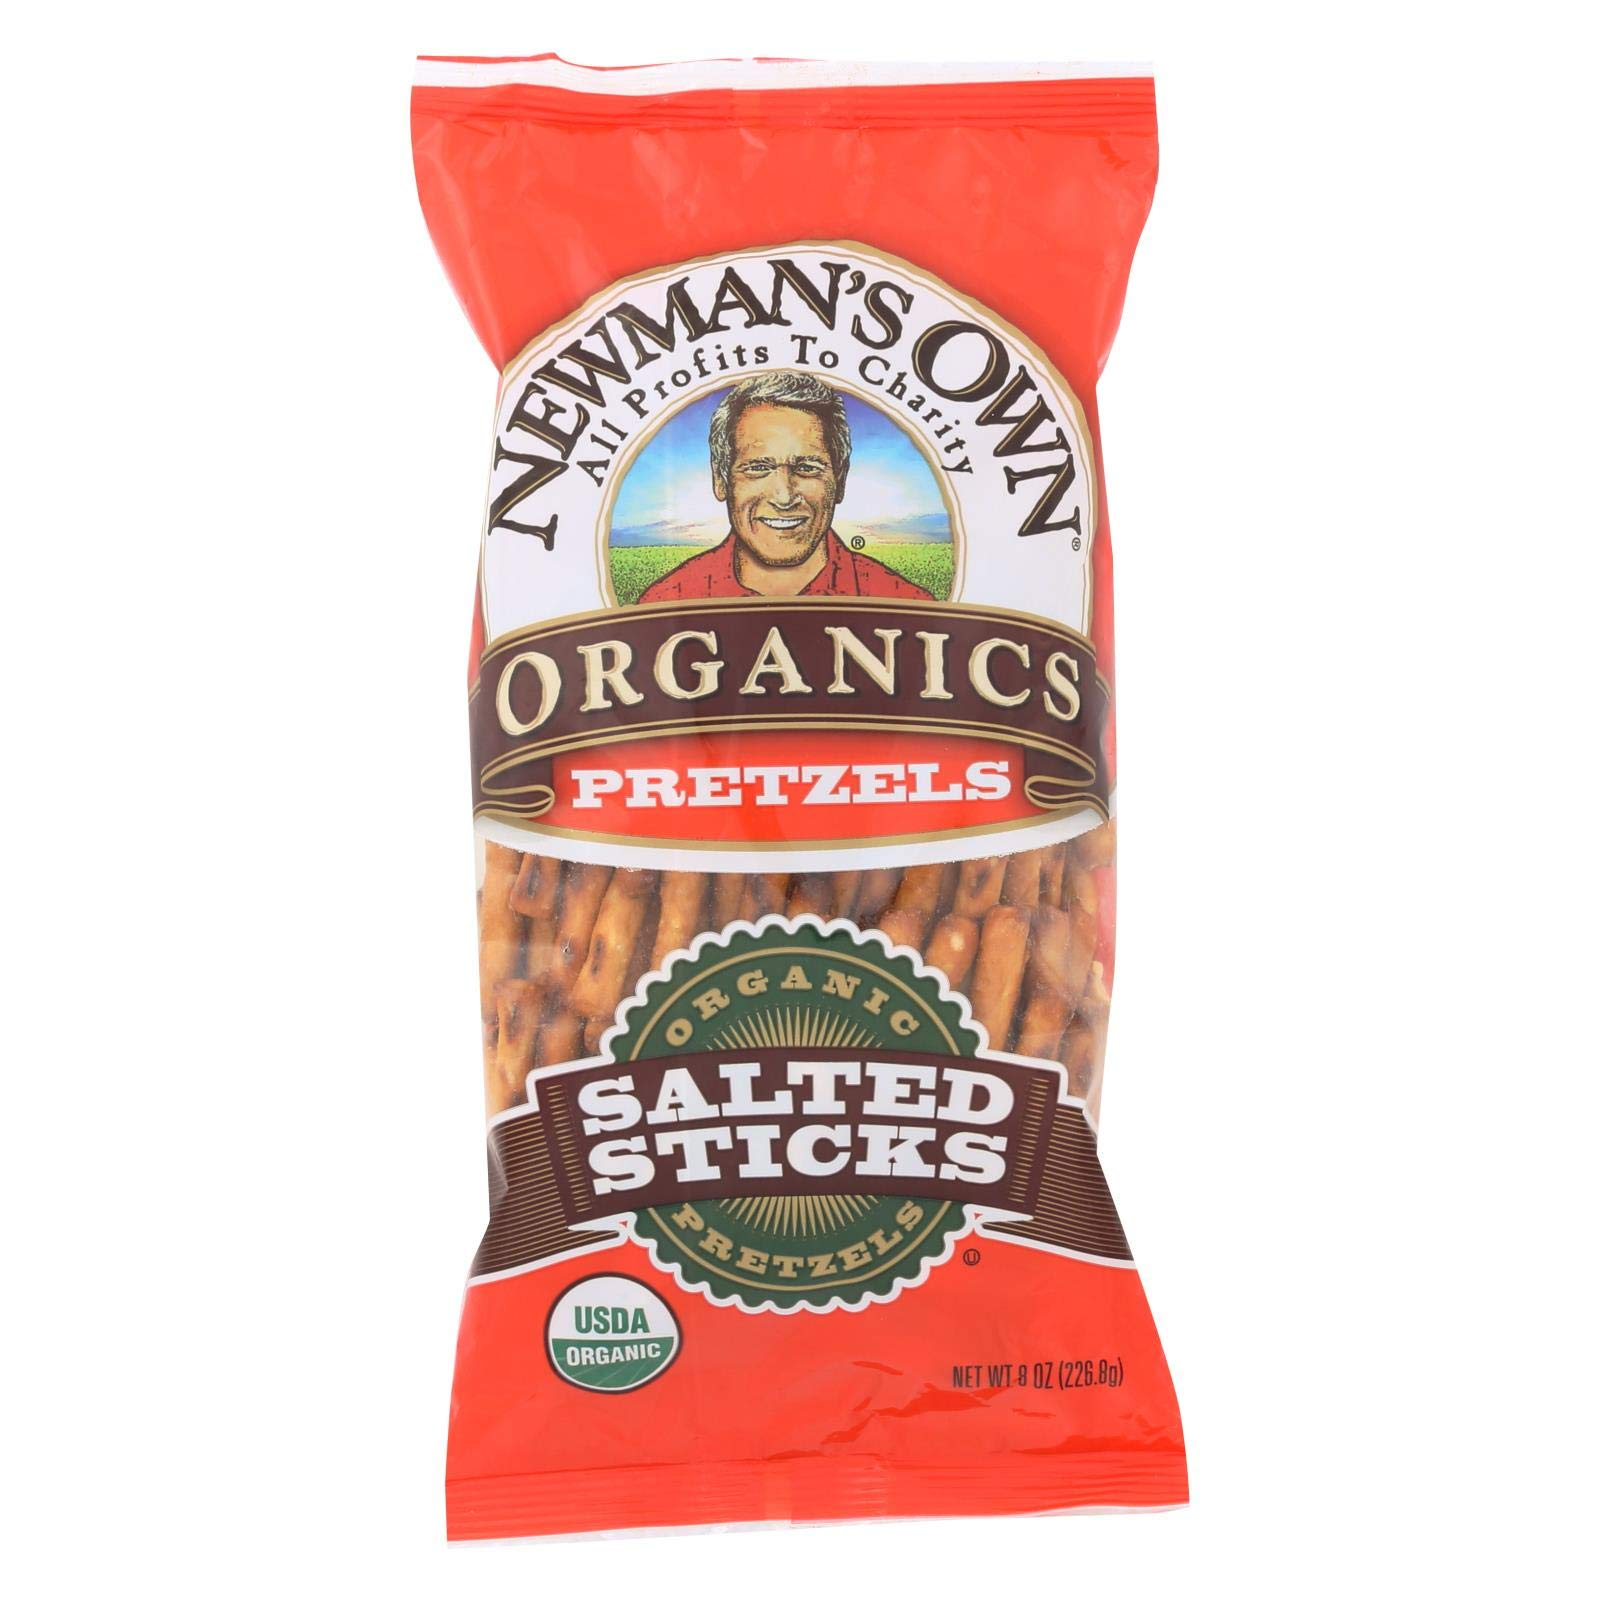 Newman's Own Organics Organic Pretzel Sticks - Salted - Case of 12 - 8 oz. by Newman's Own Organics (Image #1)